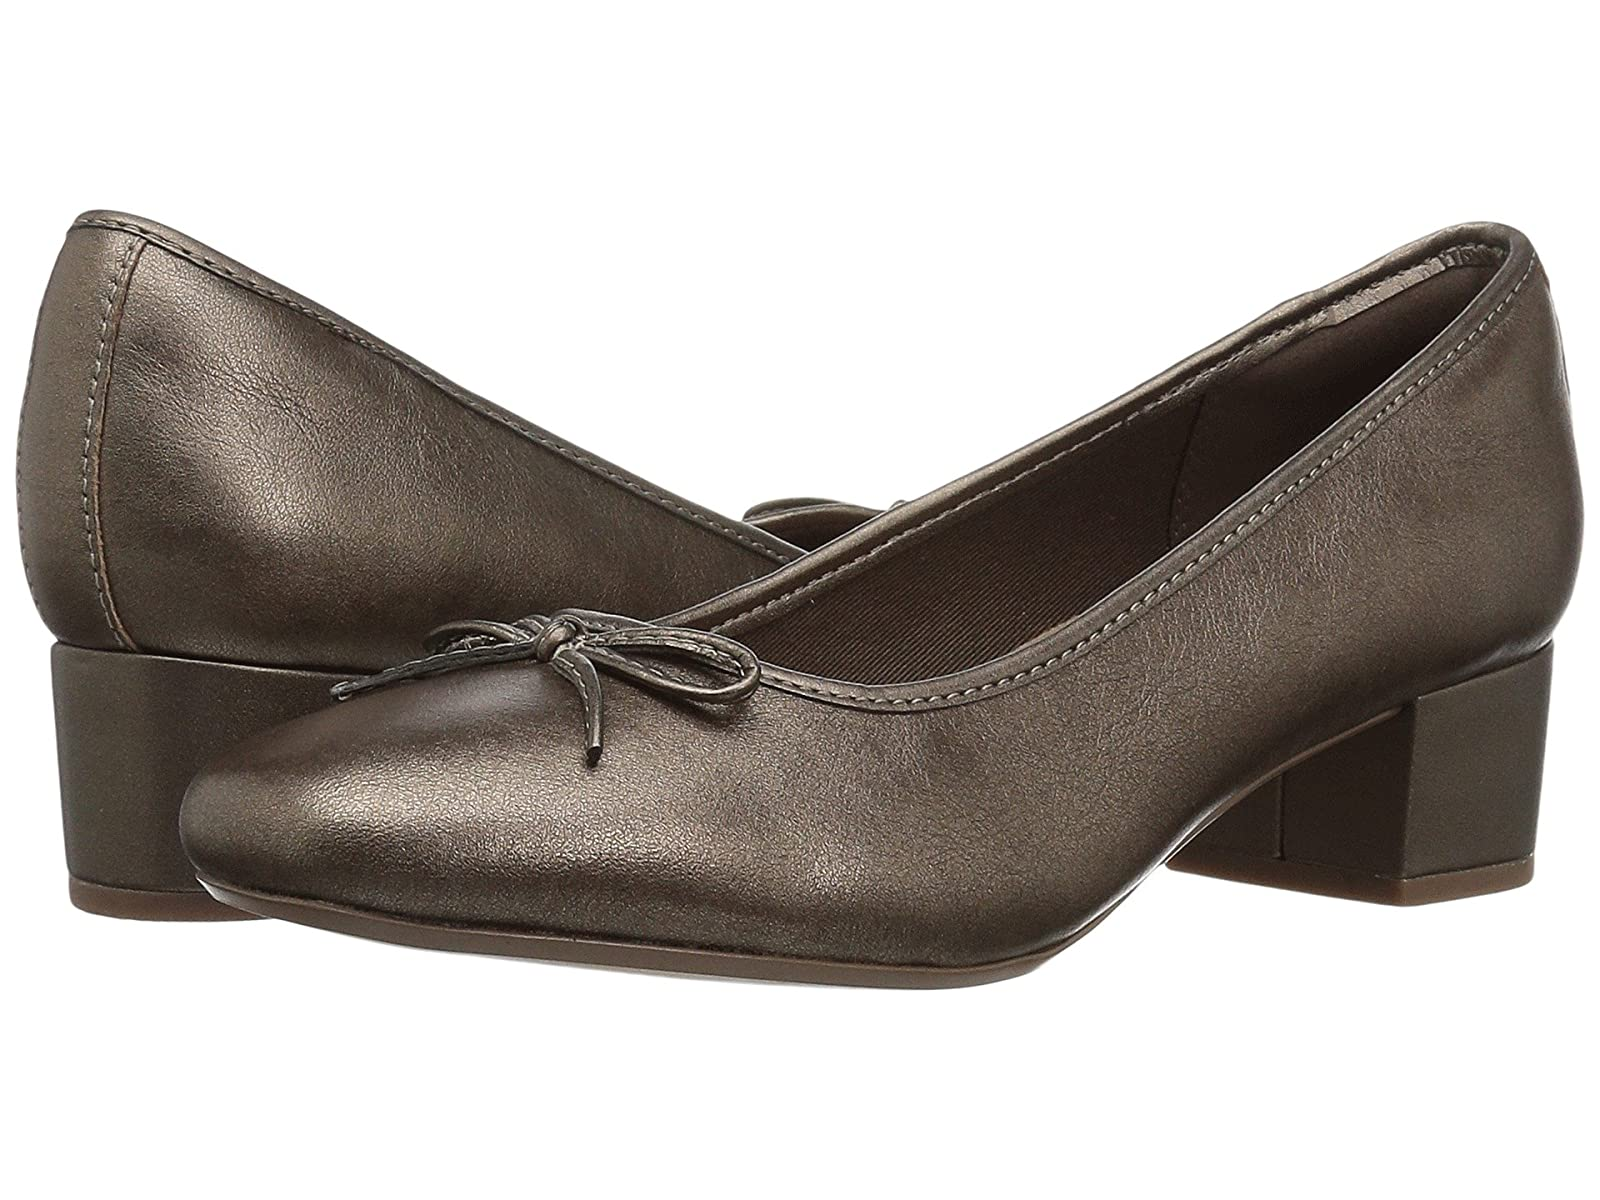 Clarks Chartli DaisyCheap and distinctive eye-catching shoes